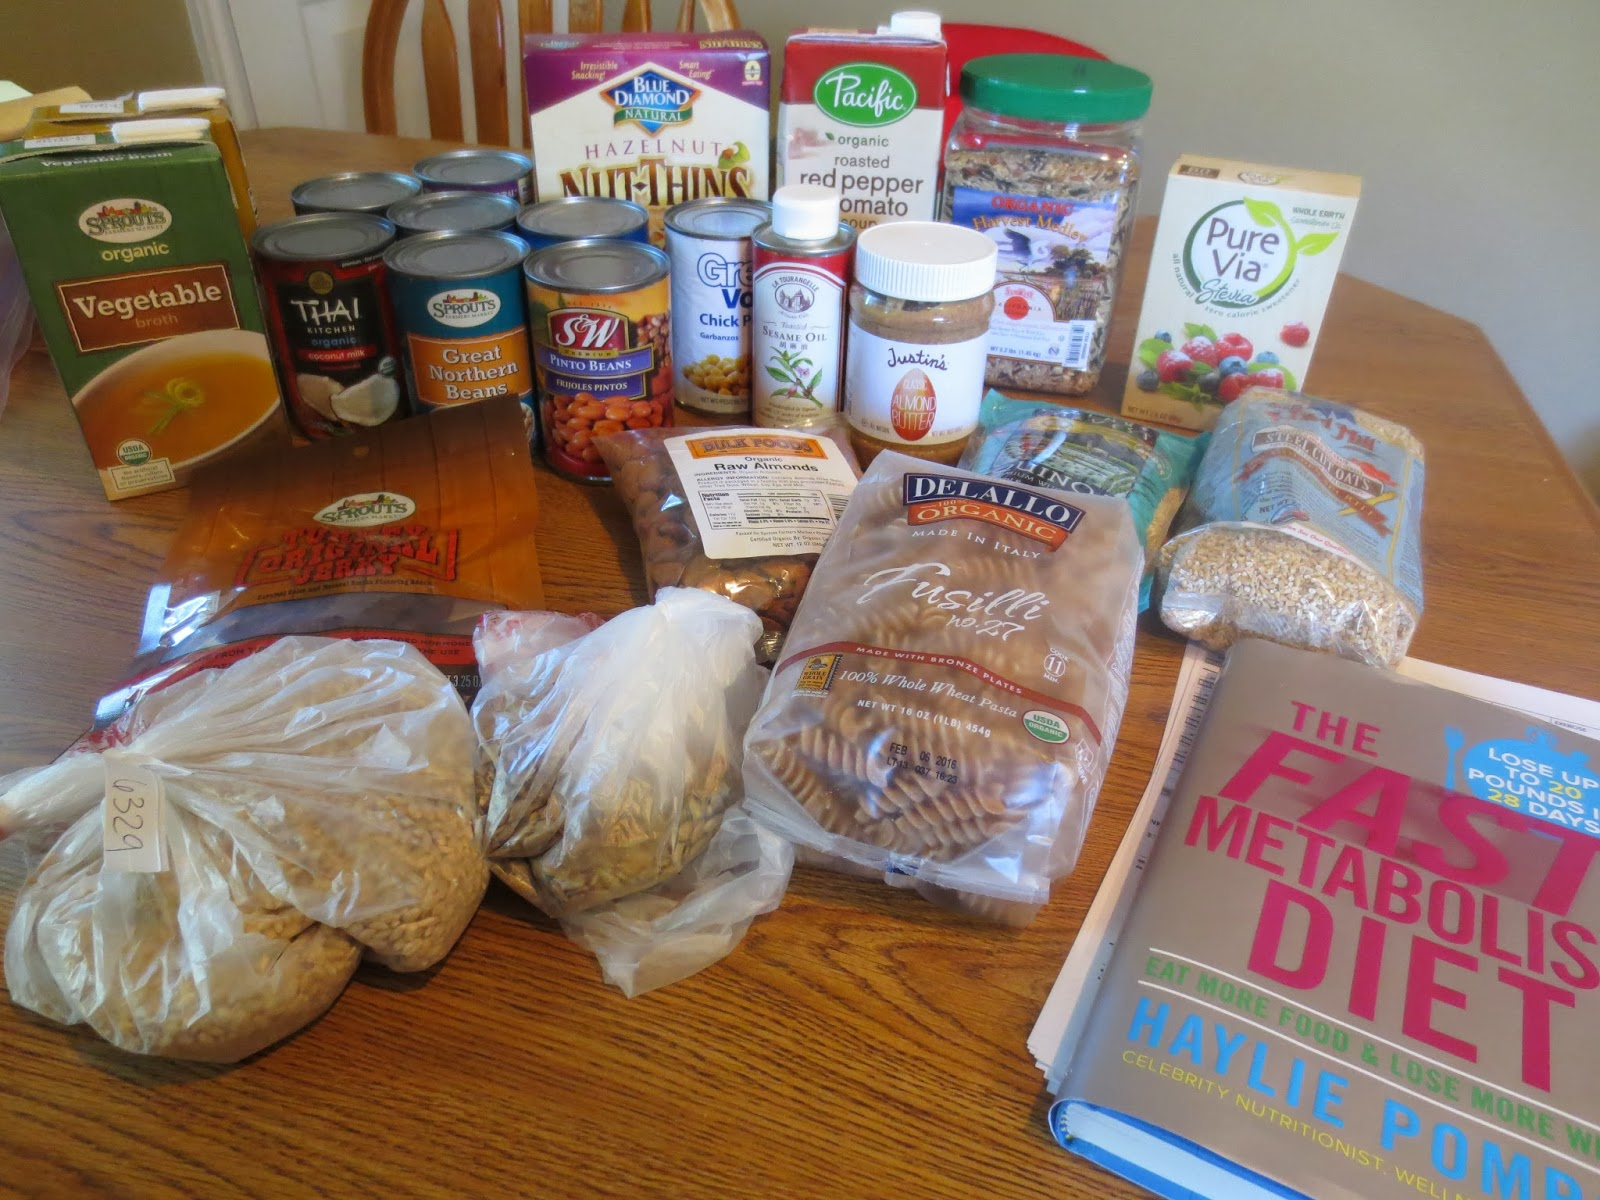 Fast metabolism diet reviews - Tuesday September 24 2013